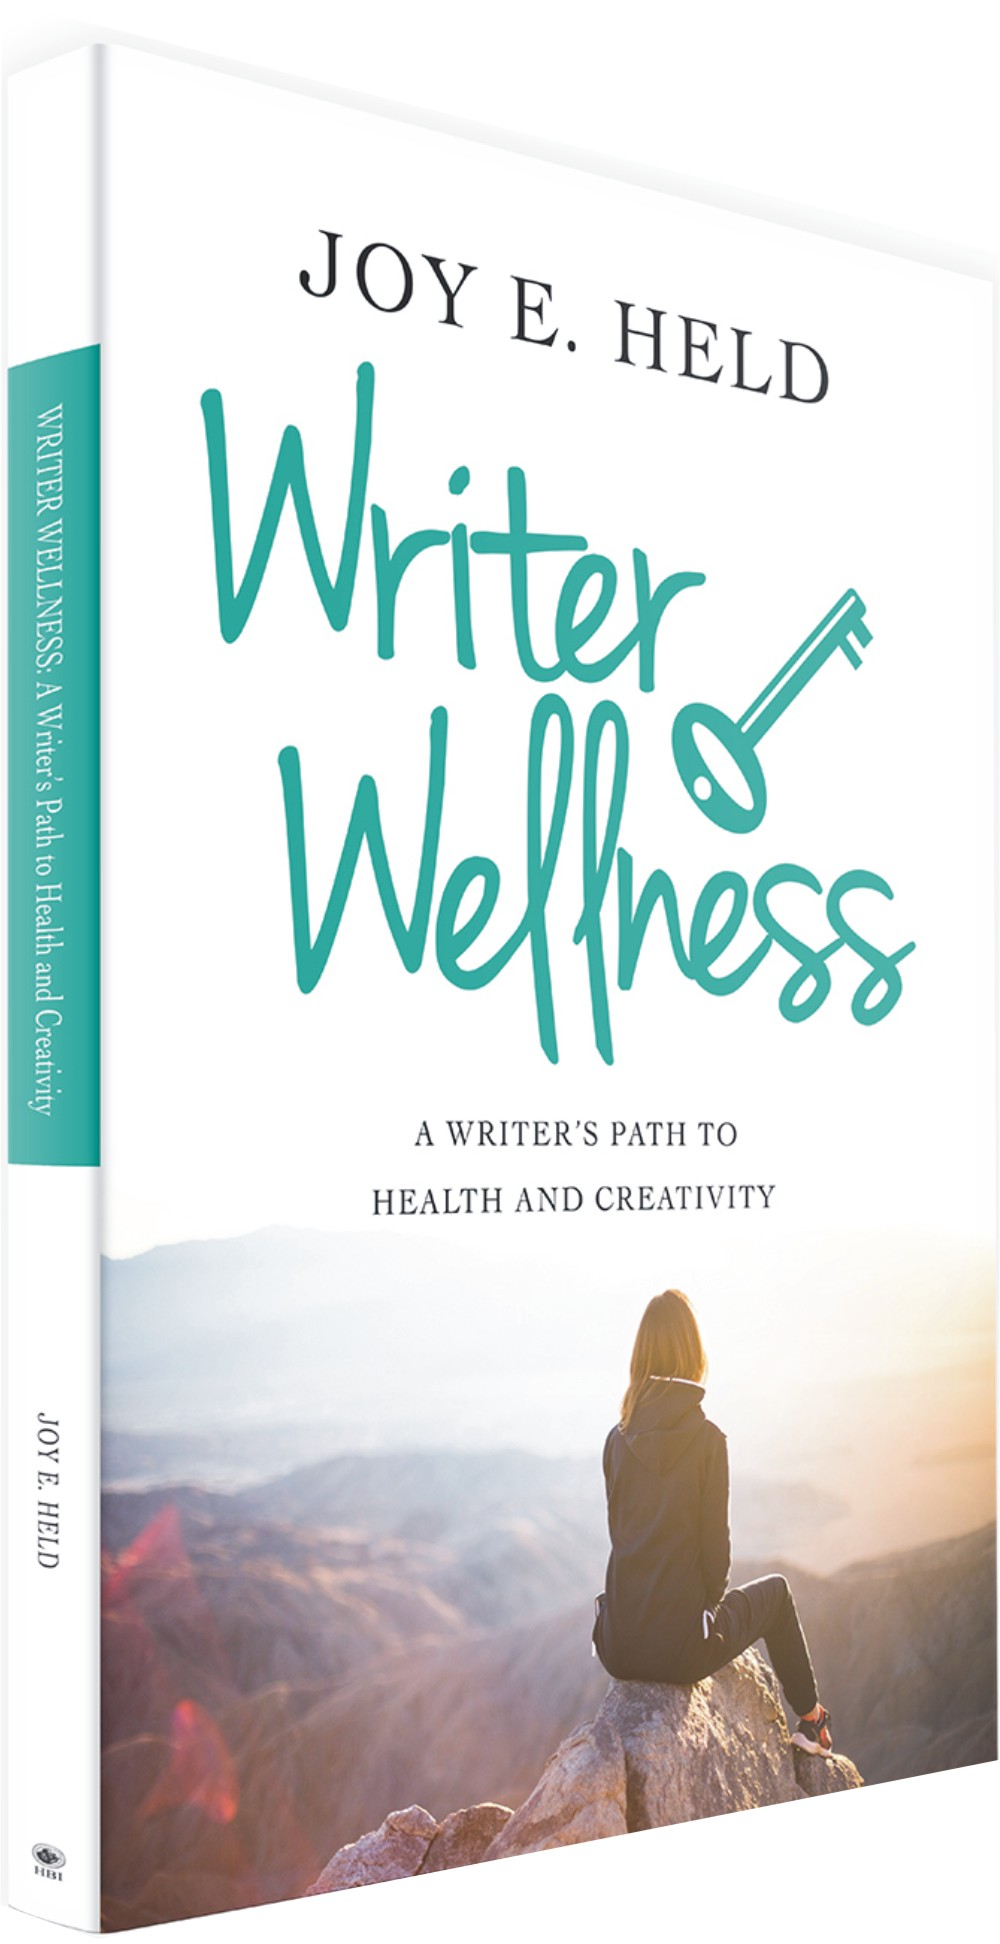 WRITER WELLNESS COVER SPINE 2020_9781951556051